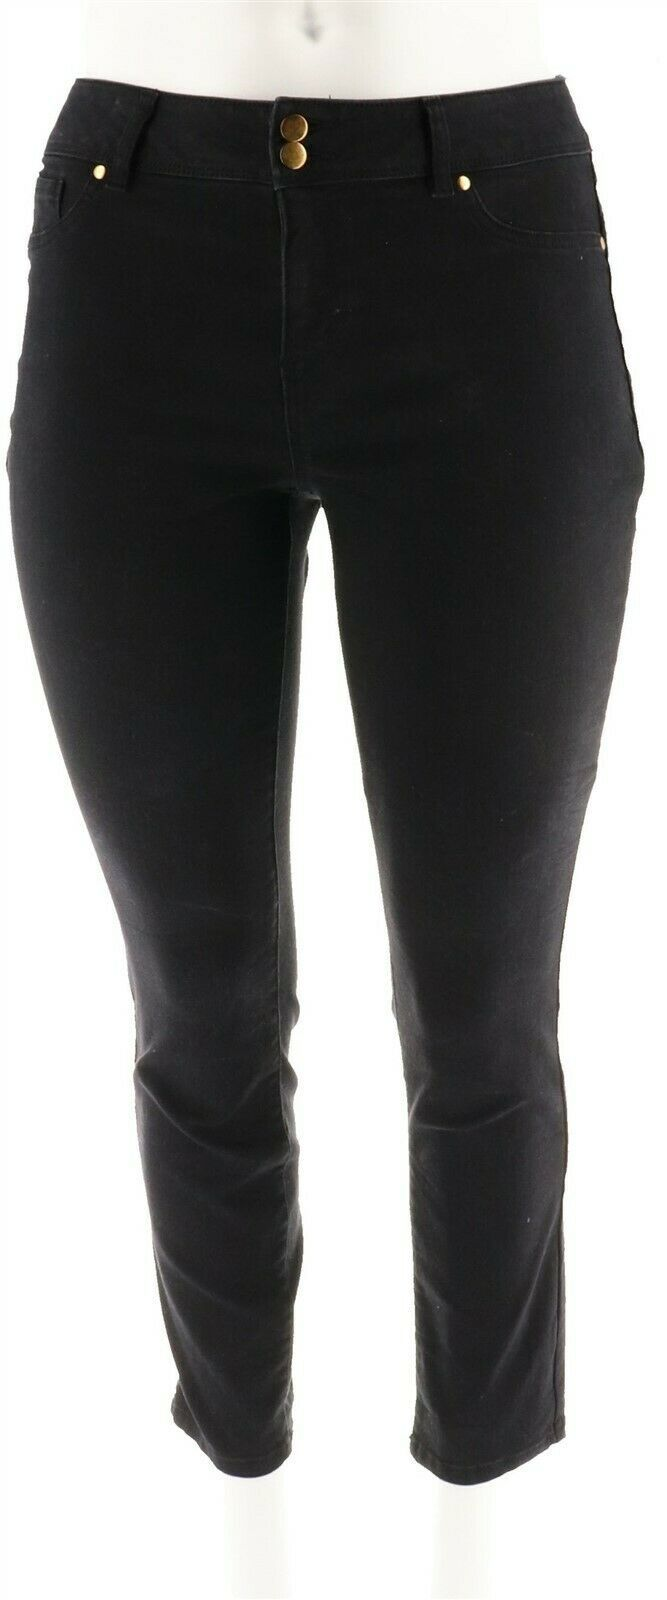 Primary image for IMAN Global Curve Luxury Denim Ankle Pant Zipper Jet Black 12 Avg NEW 546-857